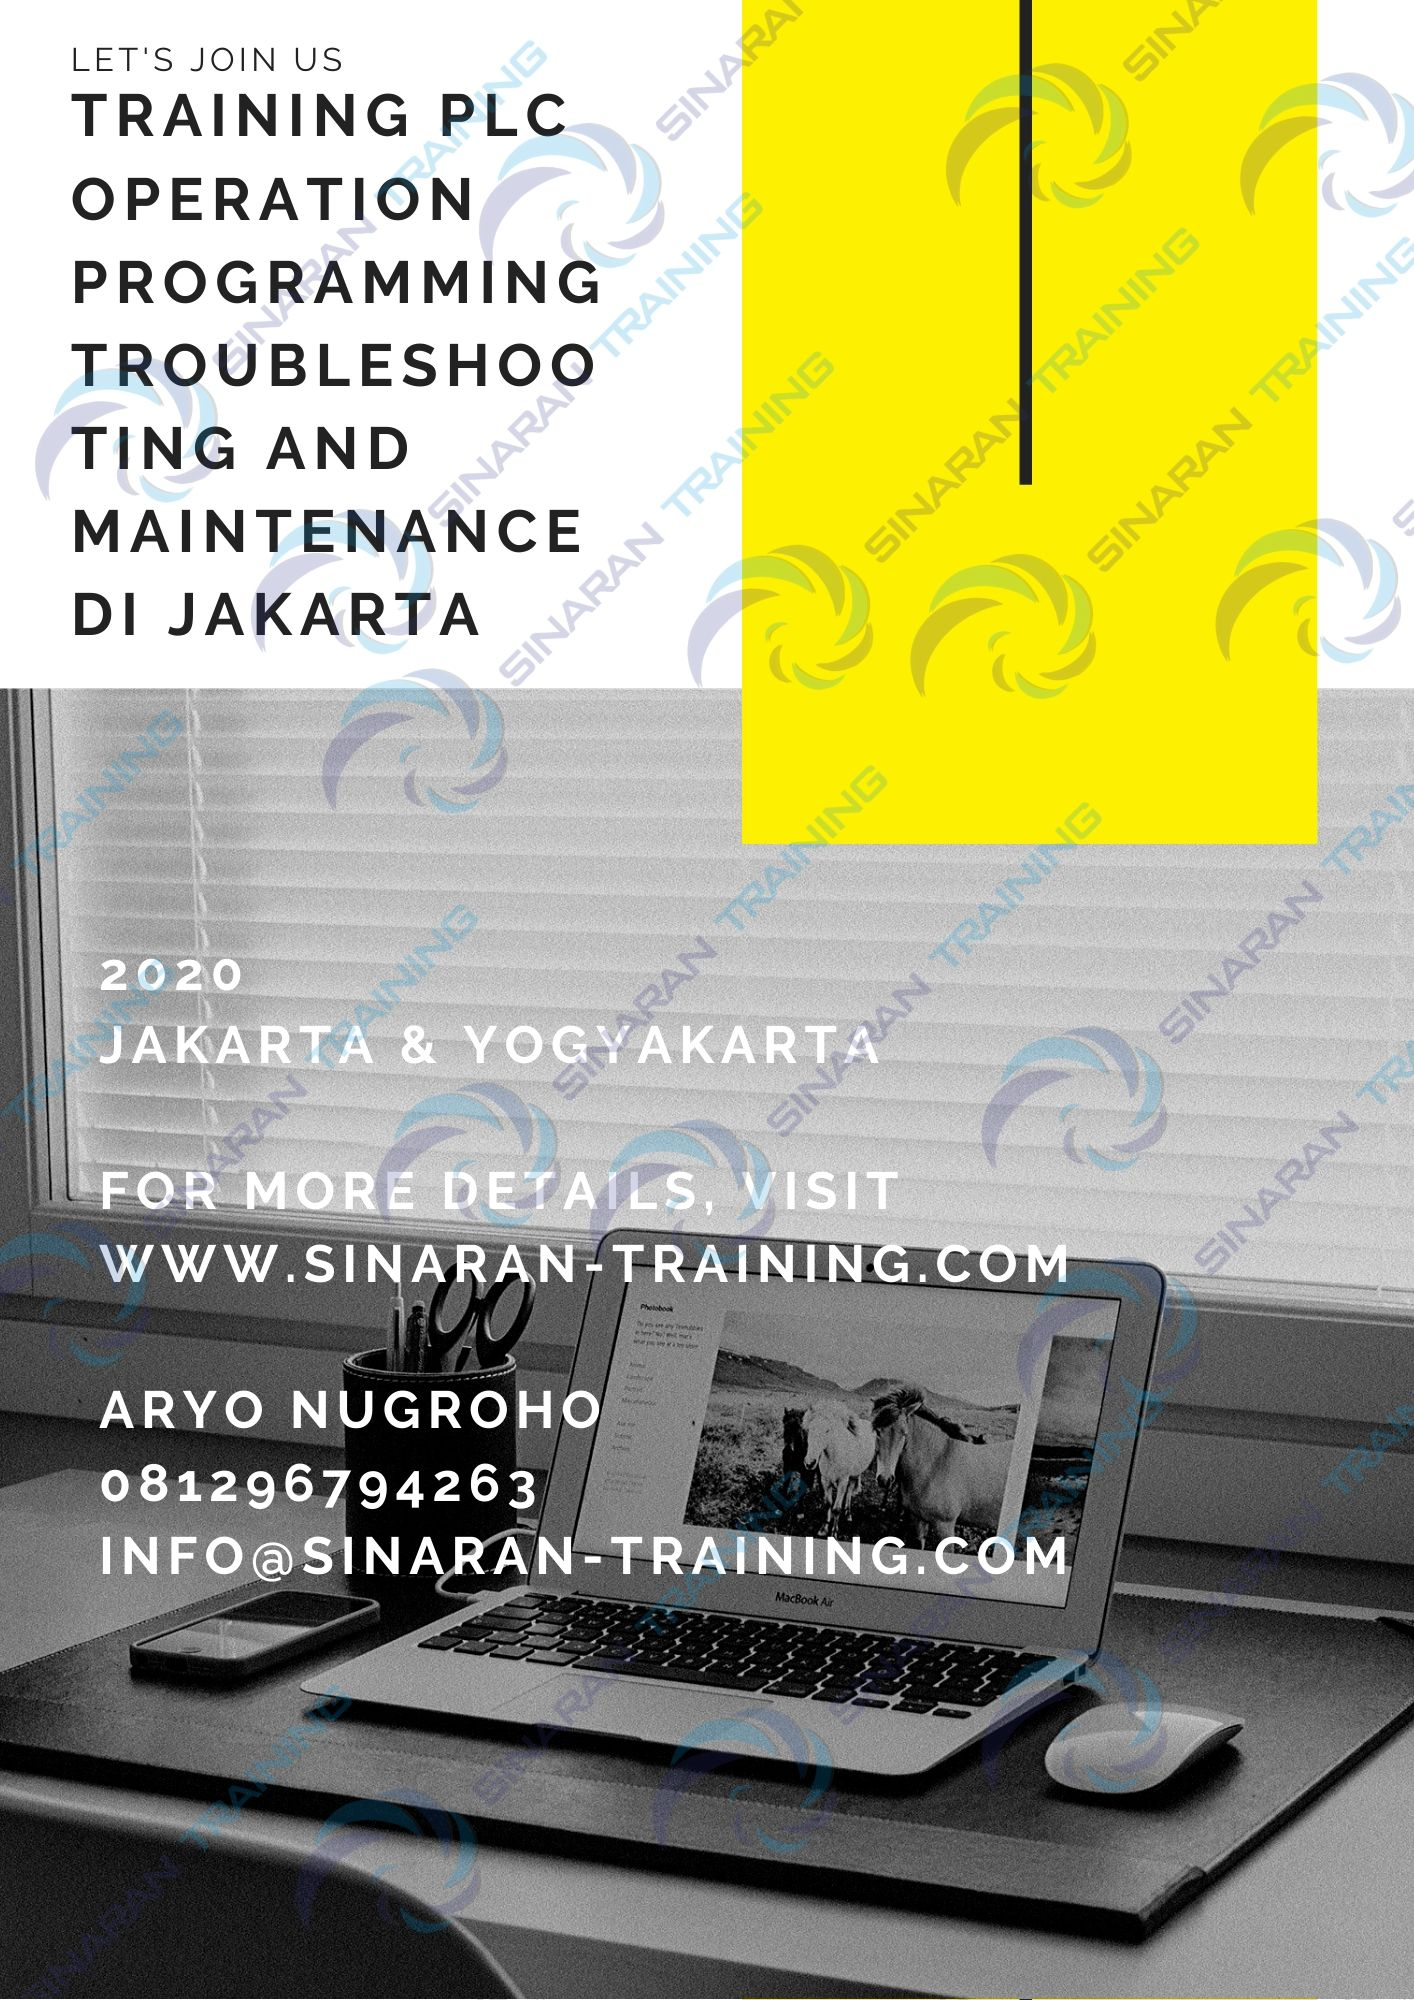 training PLC OPERATION PROGRAMMING TROUBLESHOOTING AND MAINTENANCE DI JAKARTA,pelatihan PLC OPERATION PROGRAMMING TROUBLESHOOTING AND MAINTENANCE DI JAKARTA,training PLC OPERATION PROGRAMMING TROUBLESHOOTING AND MAINTENANCE DI JAKARTA Batam,training PLC OPERATION PROGRAMMING TROUBLESHOOTING AND MAINTENANCE DI JAKARTA Bandung,training PLC OPERATION PROGRAMMING TROUBLESHOOTING AND MAINTENANCE DI JAKARTA Jakarta,training PLC OPERATION PROGRAMMING TROUBLESHOOTING AND MAINTENANCE DI JAKARTA Jogja,training PLC OPERATION PROGRAMMING TROUBLESHOOTING AND MAINTENANCE DI JAKARTA Malang,training PLC OPERATION PROGRAMMING TROUBLESHOOTING AND MAINTENANCE DI JAKARTA Surabaya,training PLC OPERATION PROGRAMMING TROUBLESHOOTING AND MAINTENANCE DI JAKARTA Bali,training PLC OPERATION PROGRAMMING TROUBLESHOOTING AND MAINTENANCE DI JAKARTA Lombok,pelatihan PLC OPERATION PROGRAMMING TROUBLESHOOTING AND MAINTENANCE DI JAKARTA Batam,pelatihan PLC OPERATION PROGRAMMING TROUBLESHOOTING AND MAINTENANCE DI JAKARTA Bandung,pelatihan PLC OPERATION PROGRAMMING TROUBLESHOOTING AND MAINTENANCE DI JAKARTA Jakarta,pelatihan PLC OPERATION PROGRAMMING TROUBLESHOOTING AND MAINTENANCE DI JAKARTA Jogja,pelatihan PLC OPERATION PROGRAMMING TROUBLESHOOTING AND MAINTENANCE DI JAKARTA Malang,pelatihan PLC OPERATION PROGRAMMING TROUBLESHOOTING AND MAINTENANCE DI JAKARTA Surabaya,pelatihan PLC OPERATION PROGRAMMING TROUBLESHOOTING AND MAINTENANCE DI JAKARTA Bali,pelatihan PLC OPERATION PROGRAMMING TROUBLESHOOTING AND MAINTENANCE DI JAKARTA Lombok